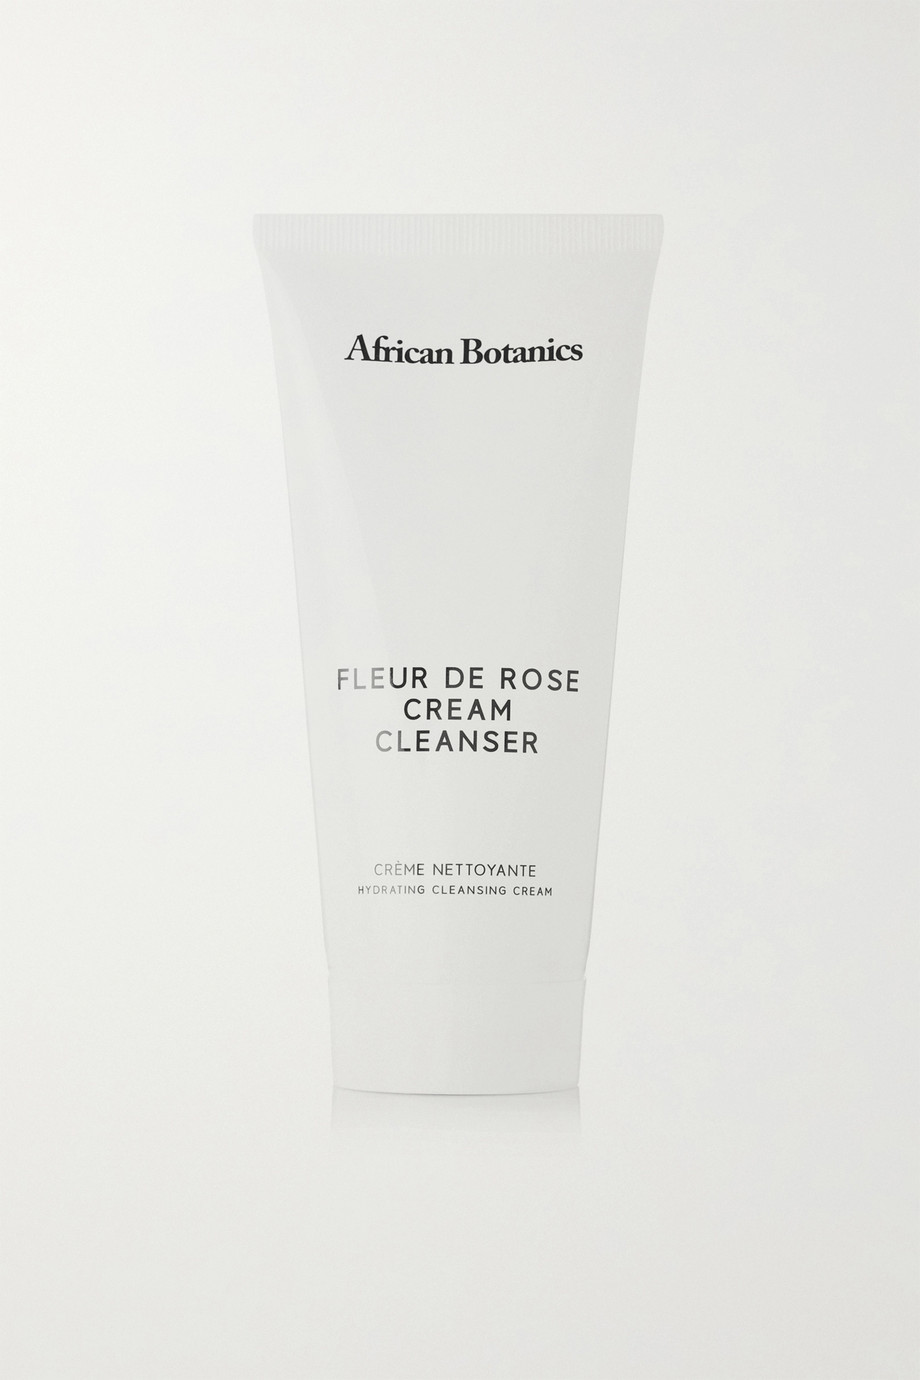 African Botanics Fleur de Rose Cream Cleanser, 100ml